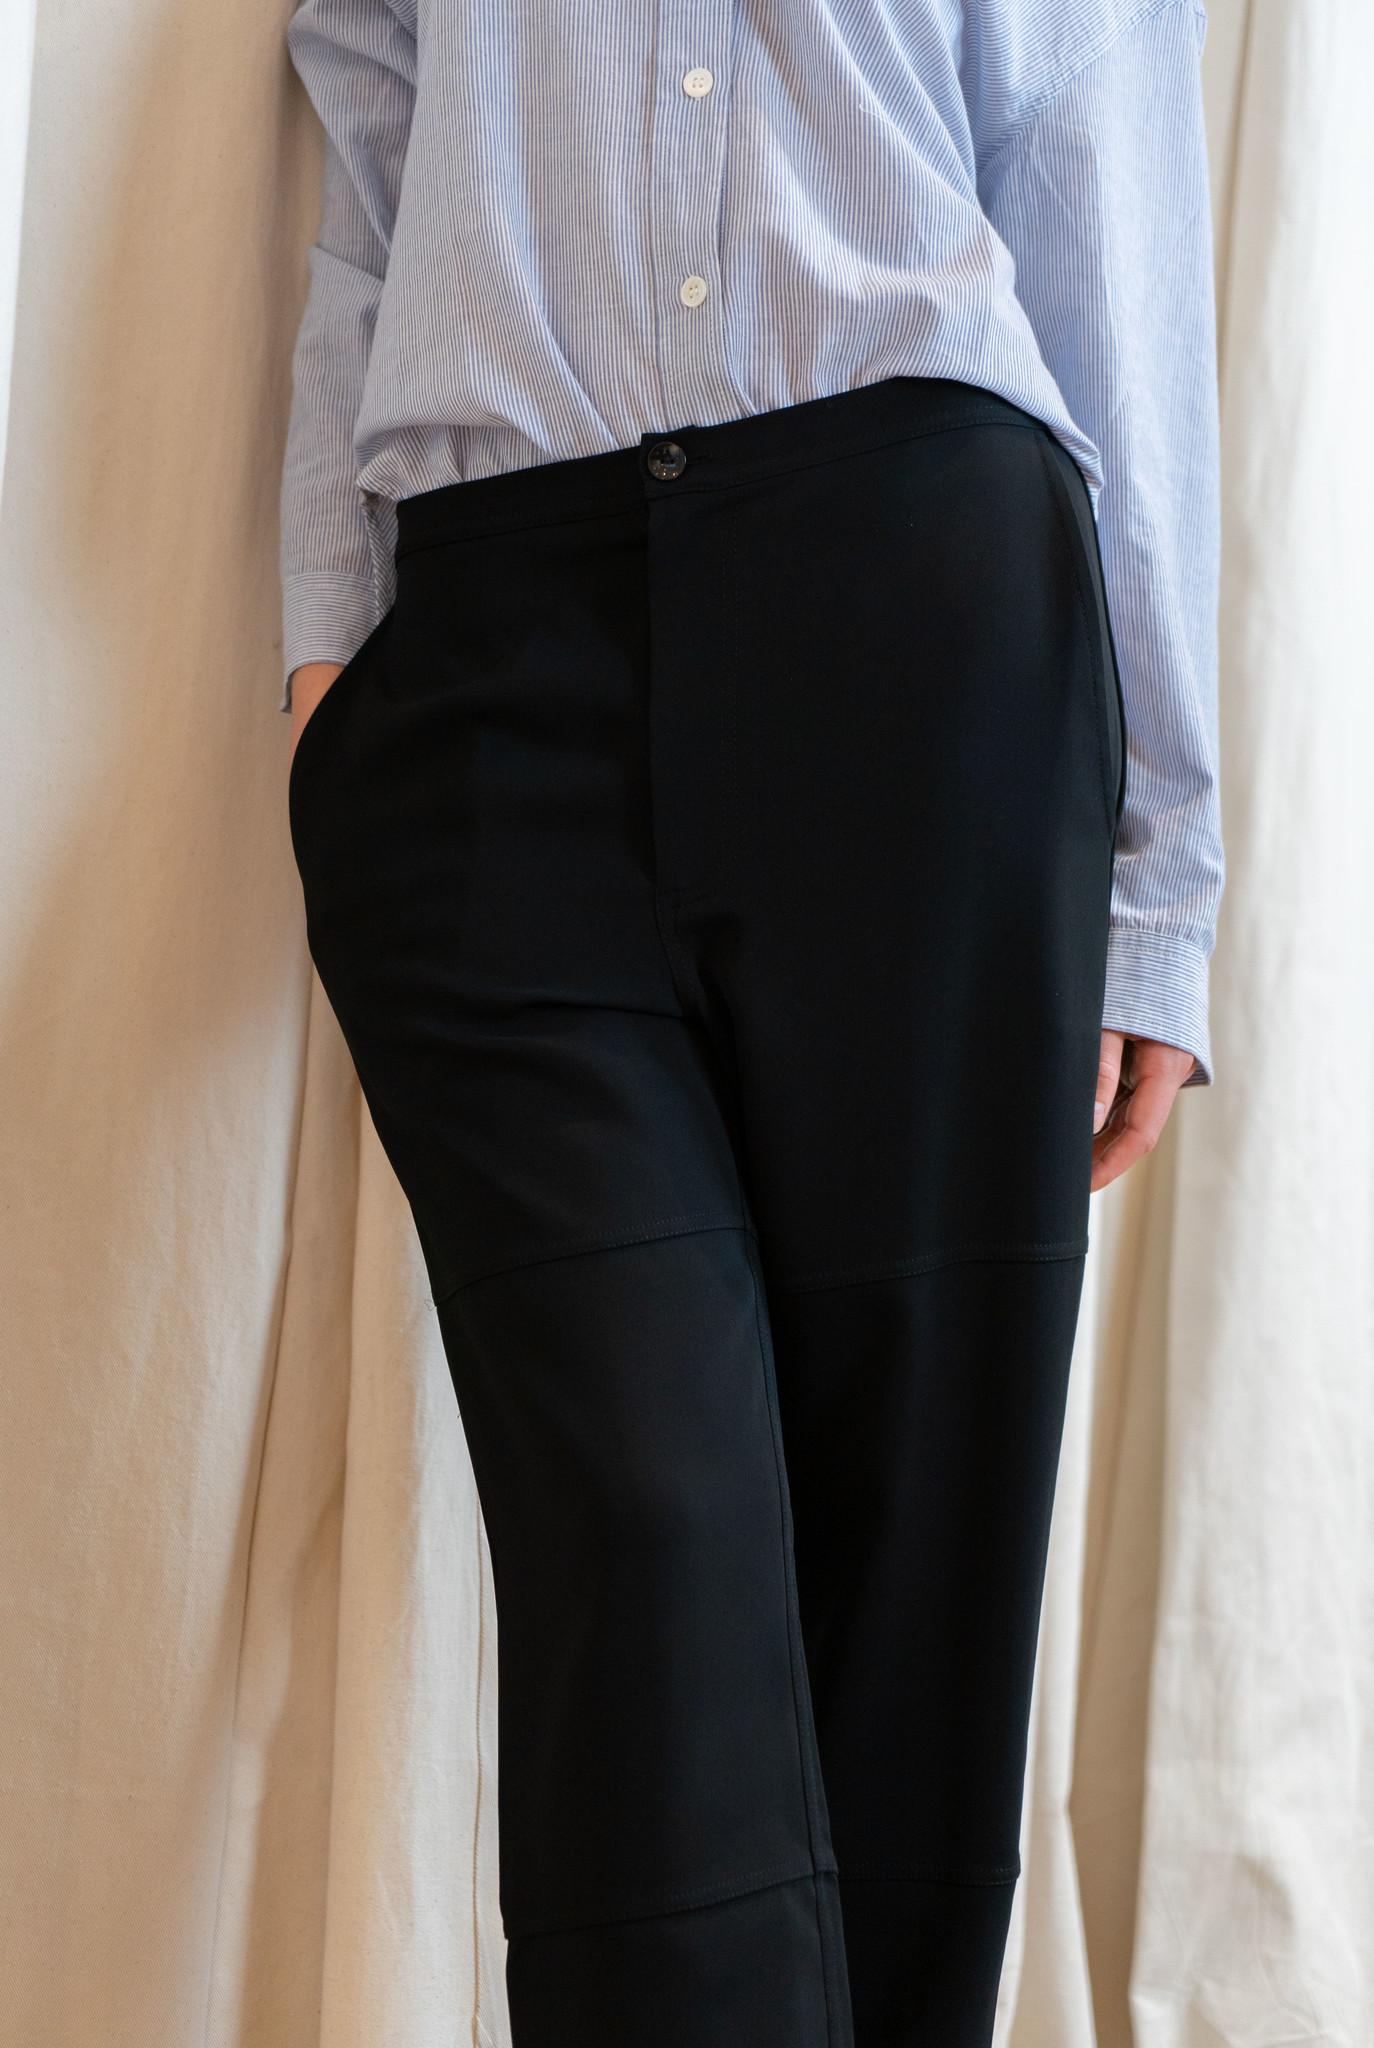 Pj worker Black stretch